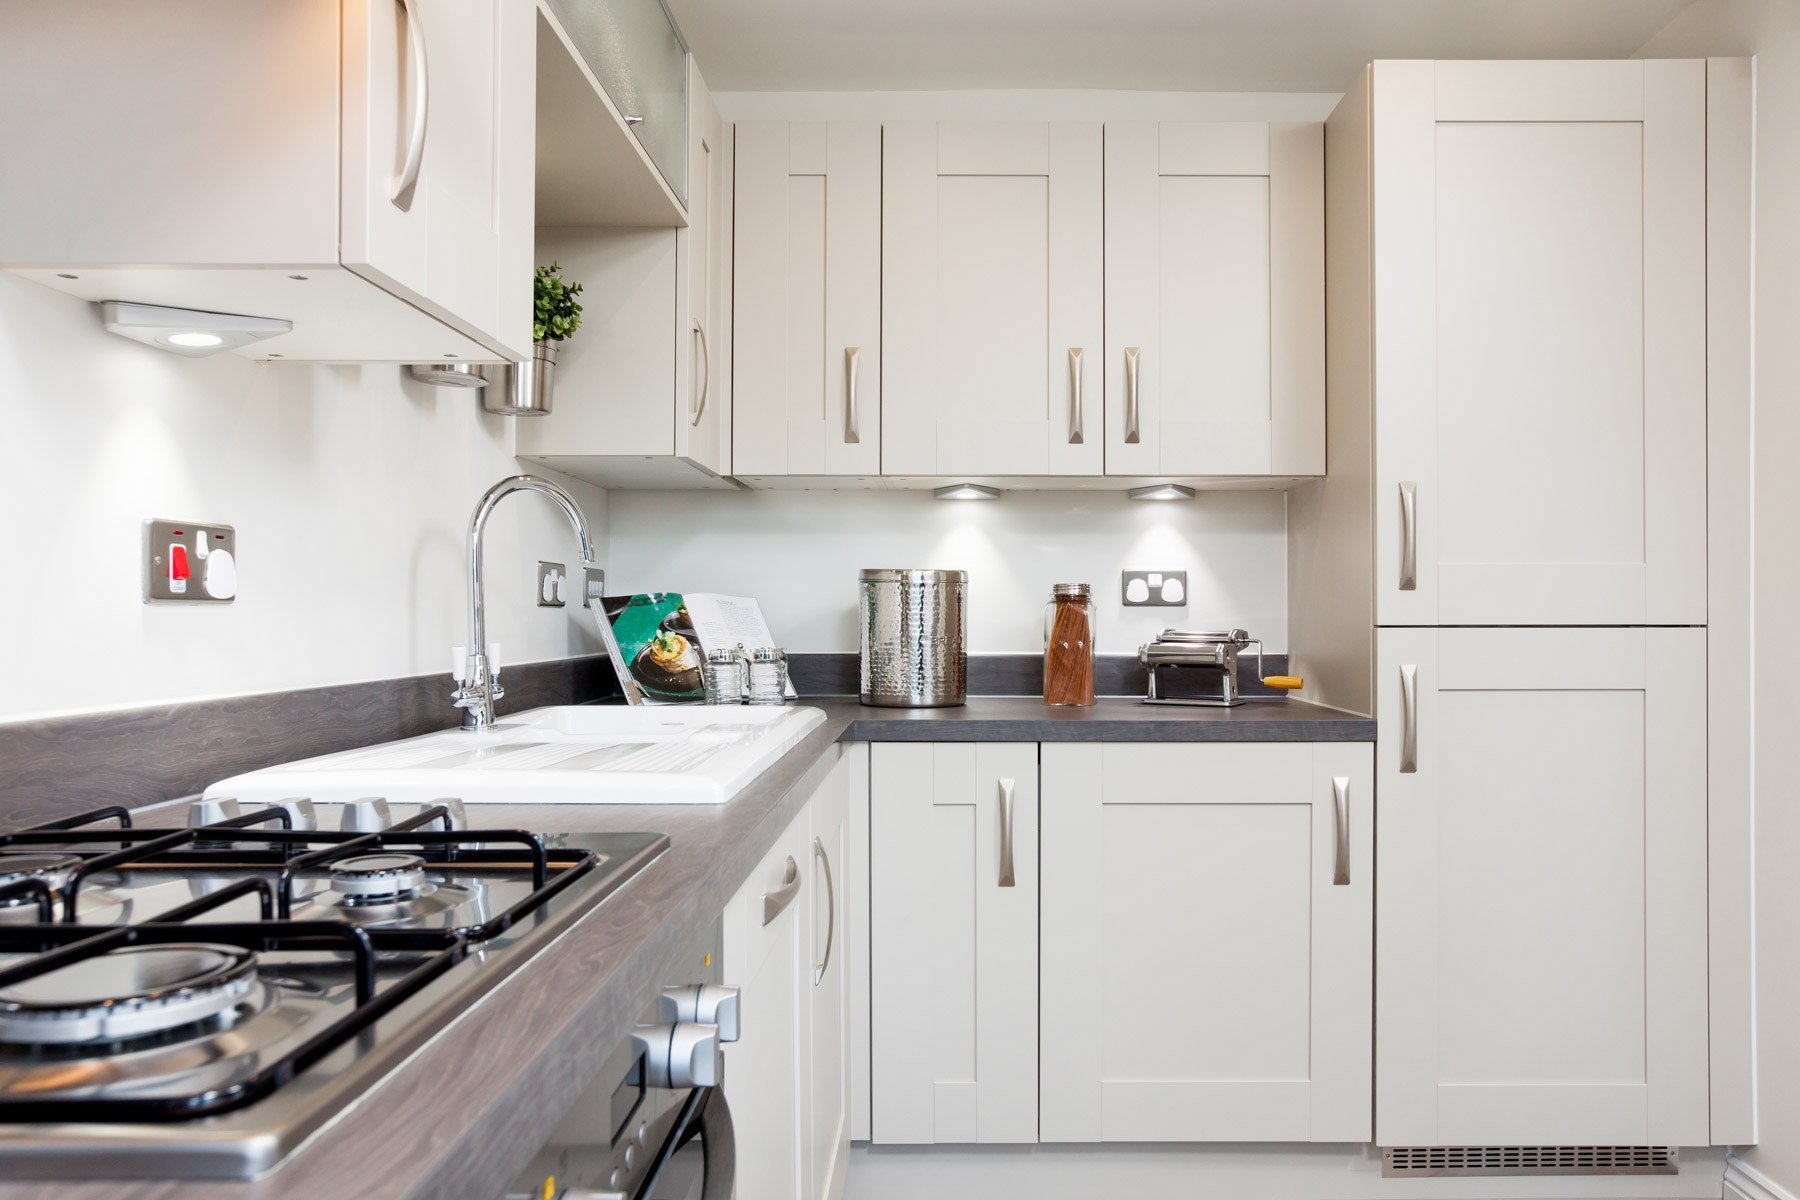 011_SG_Dadford_Kitchen